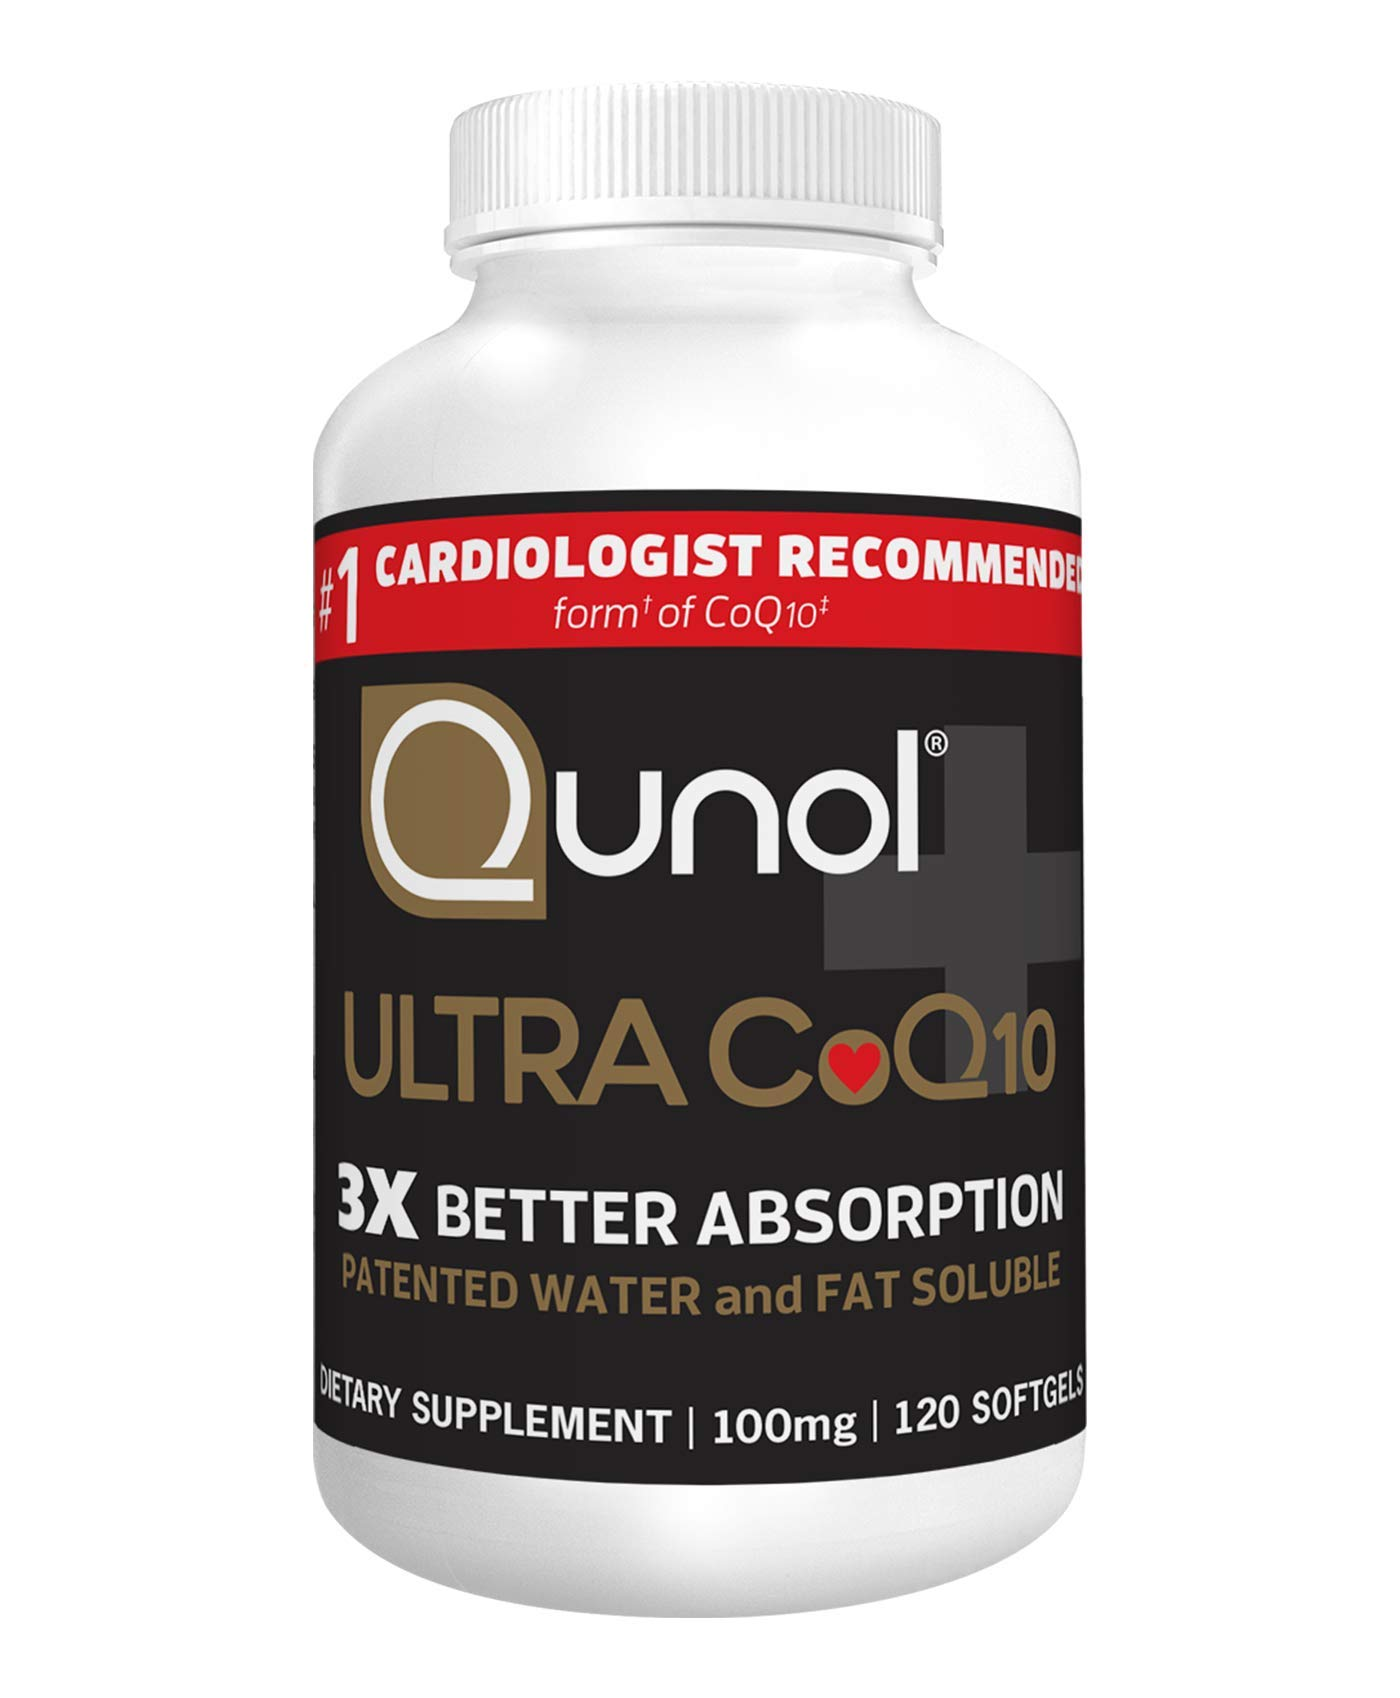 Qunol Ultra CoQ10 100mg, 3x Better Absorption, Patented Water and Fat Soluble Natural Supplement Form of Coenzyme Q10, Antioxidant for Heart Health, 120 Count Softgels